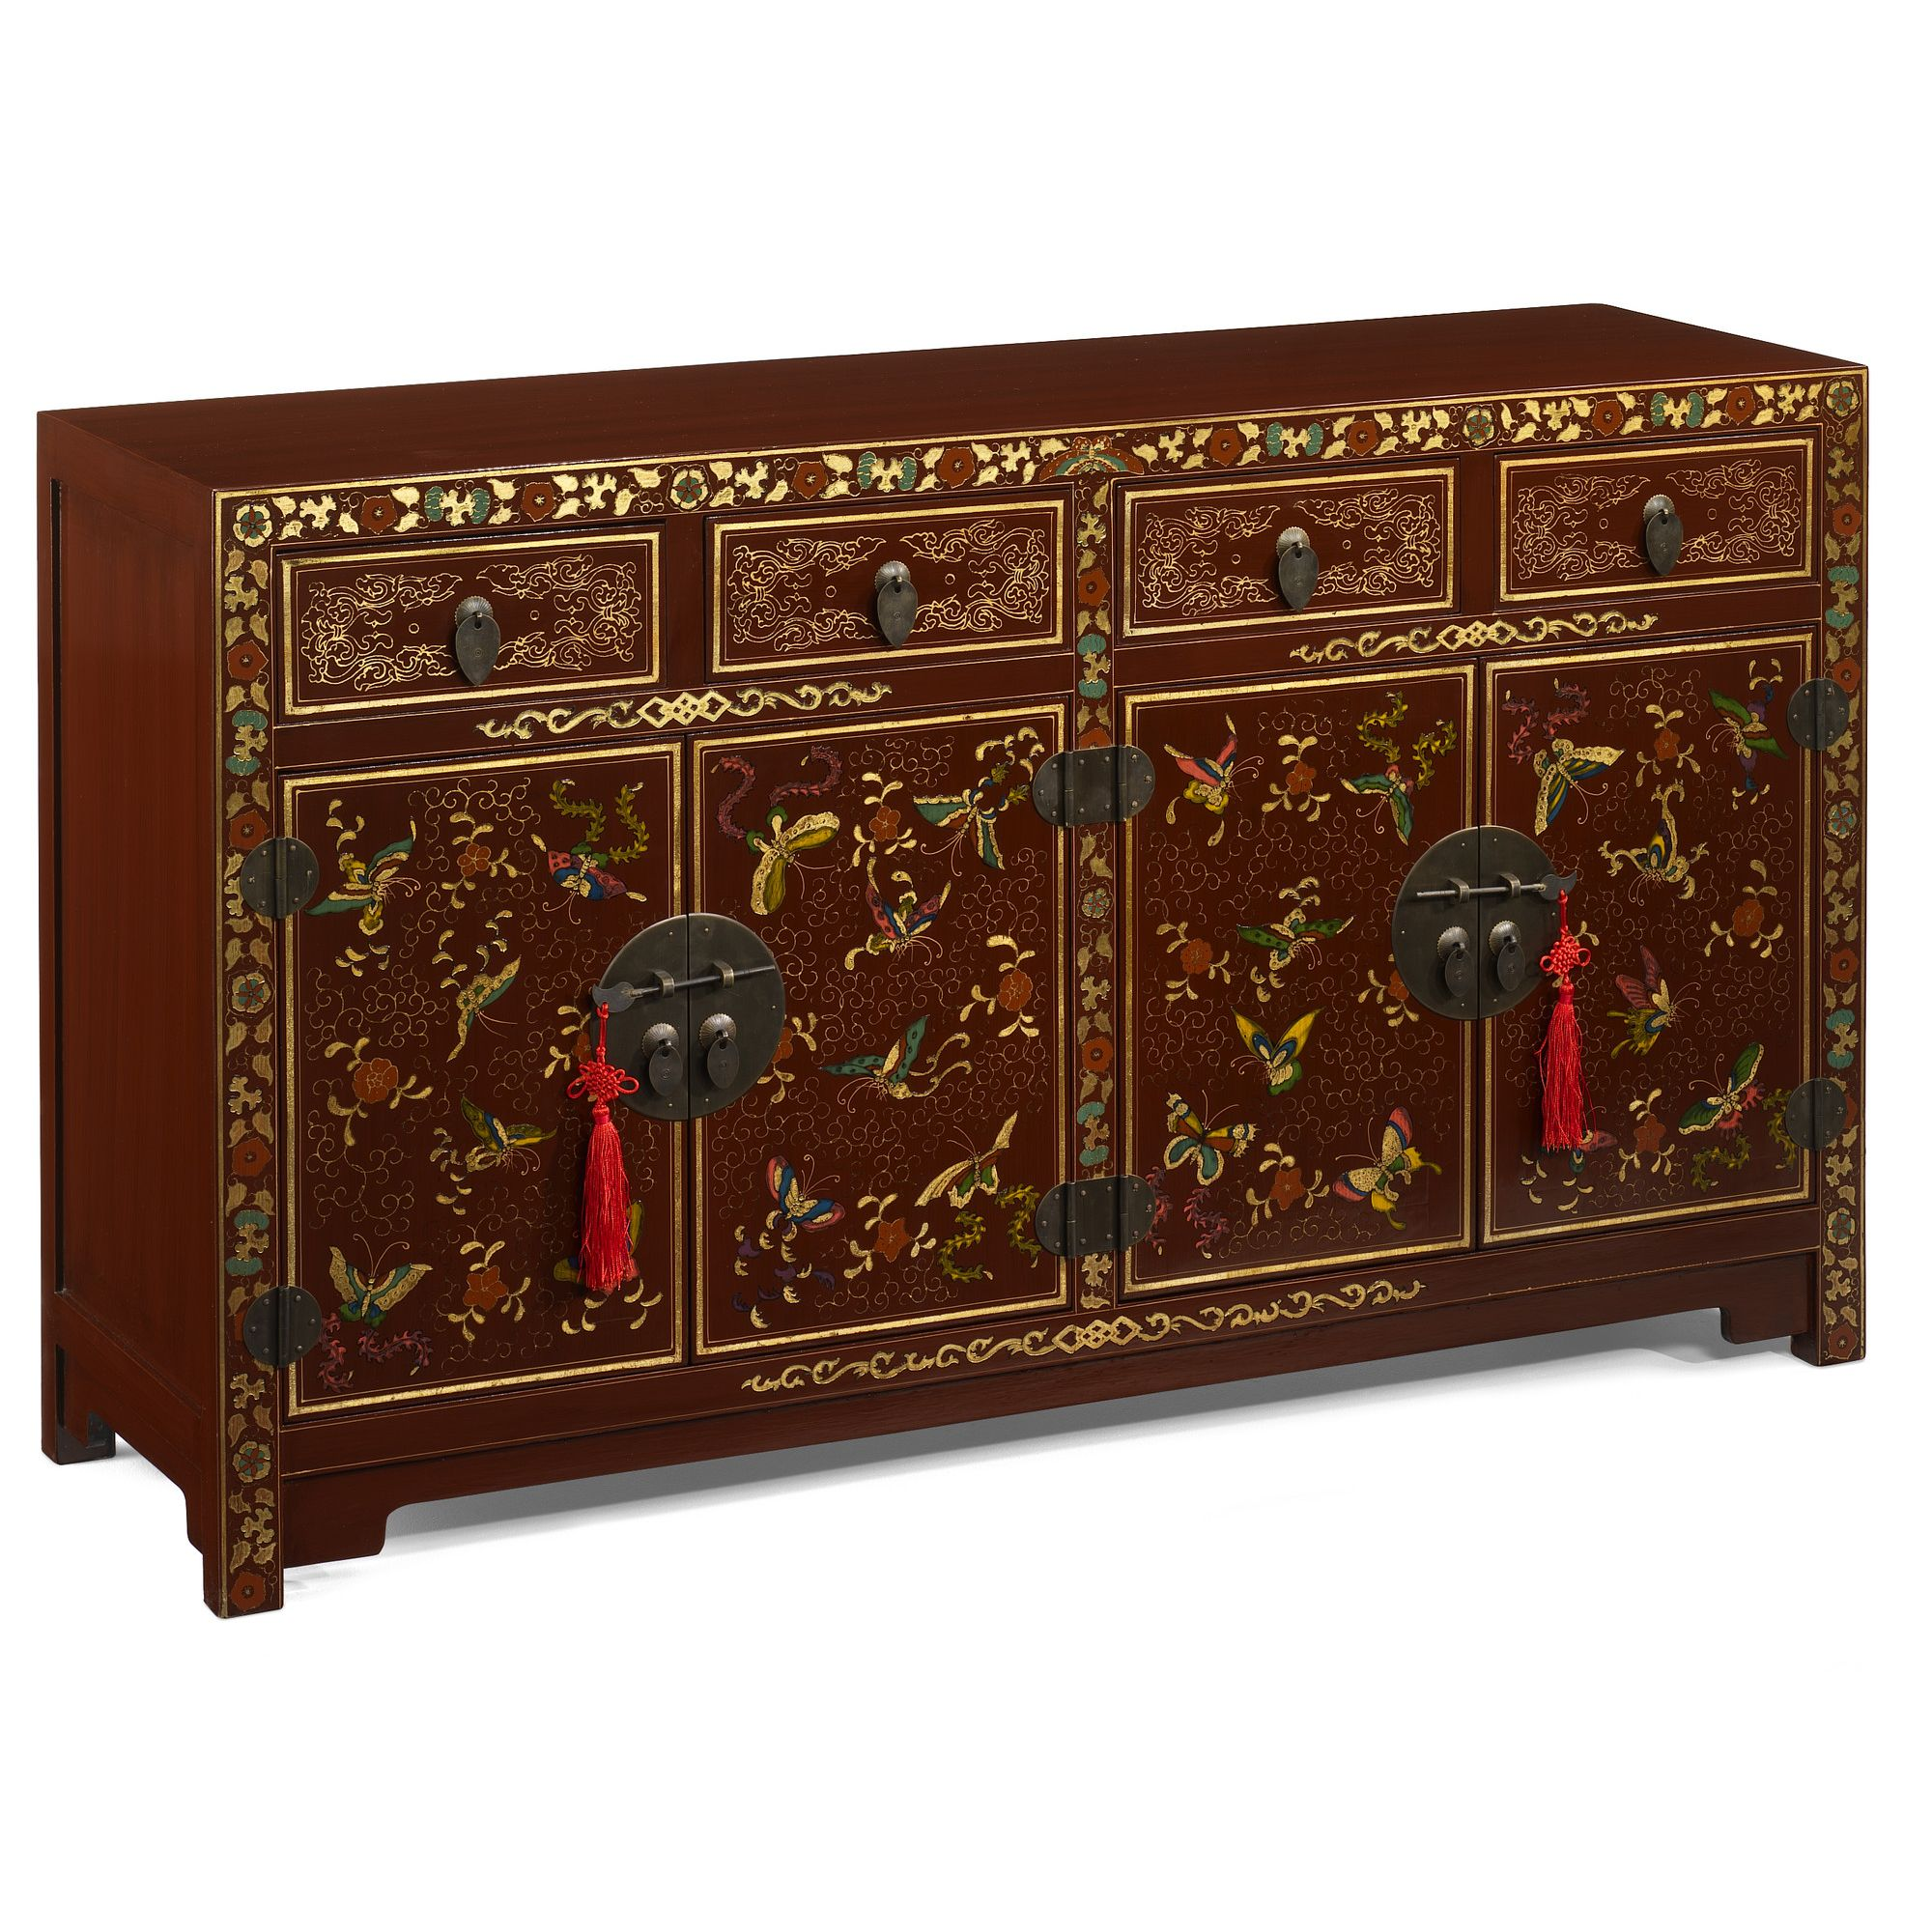 Shimu Chinese Classical Shanxi Butterfly Sideboard - Red Lacquer at Tesco Direct